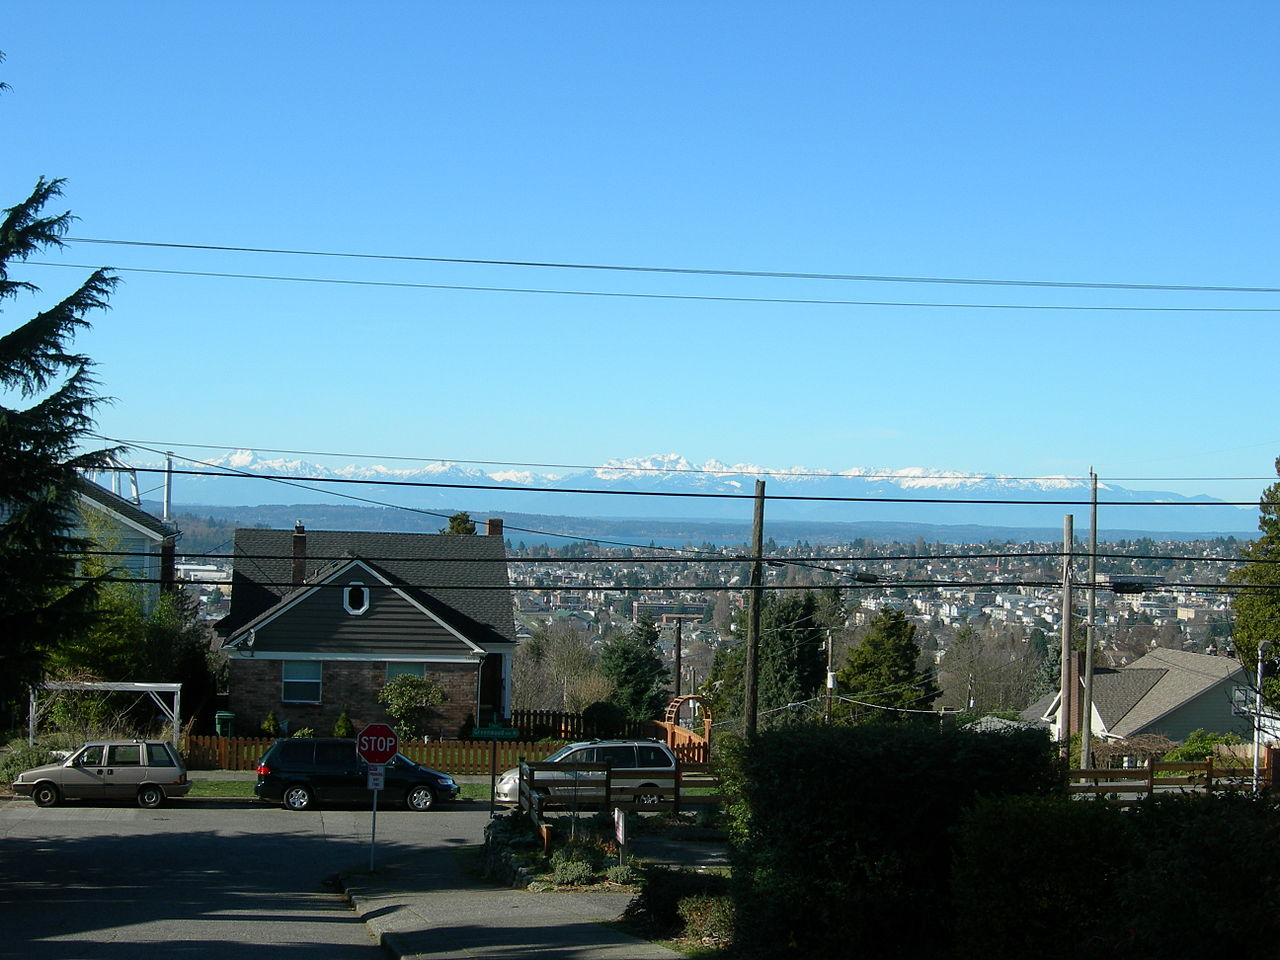 While Phinney Ridge Seattle has been known as a haven for upwardly mobile power singles, the area is becoming increasingly known for its family-friendly appeal.